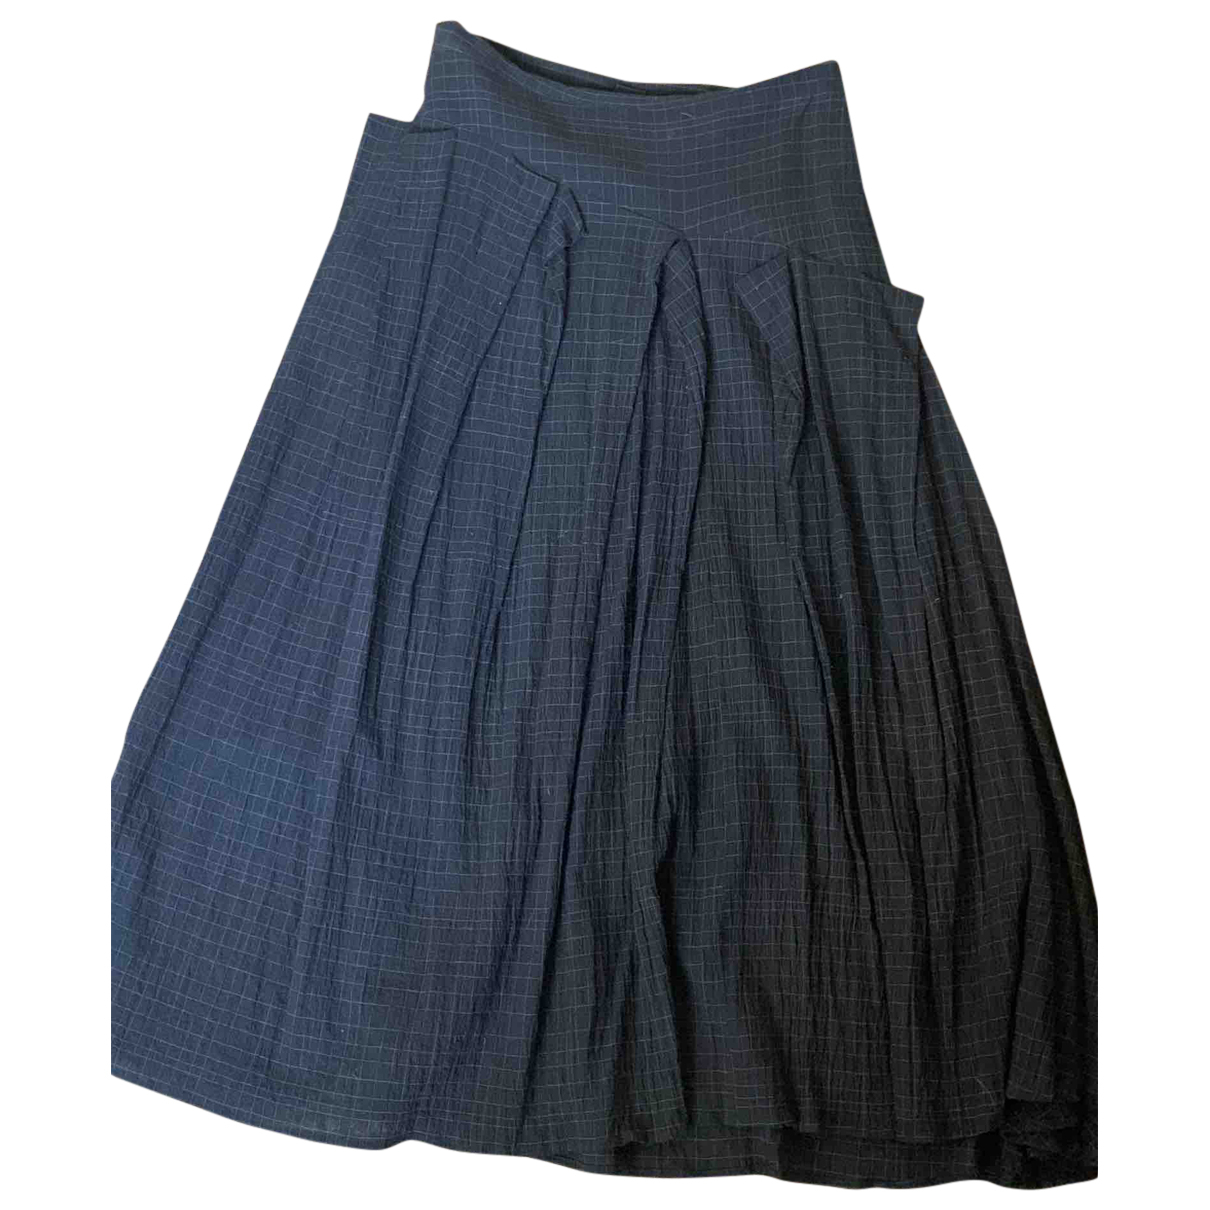 Forme Dexpression N Anthracite Wool skirt for Women 40 IT